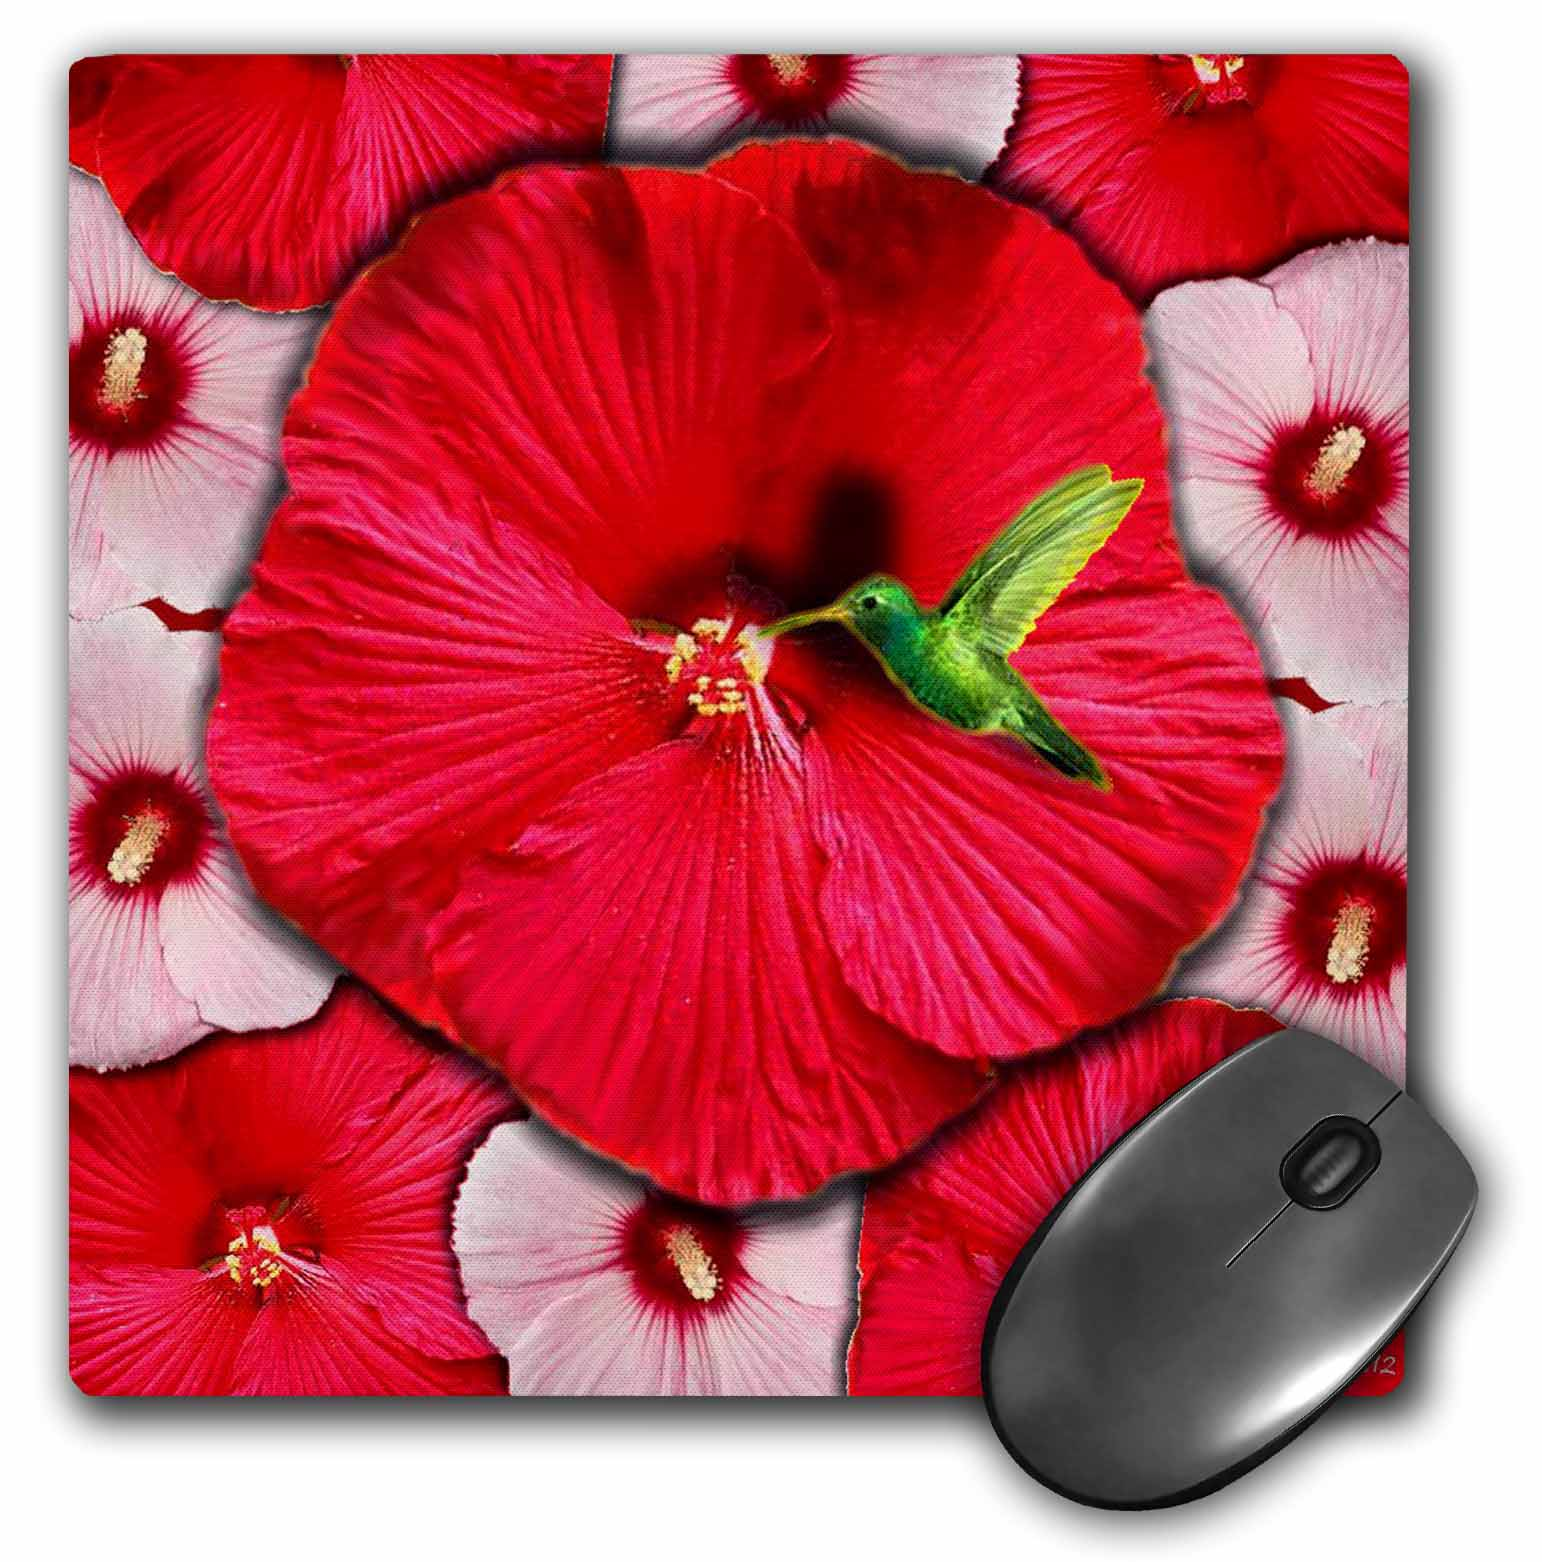 3dRose Hummingbird and Red Hibiscus, Mouse Pad, 8 by 8 inches